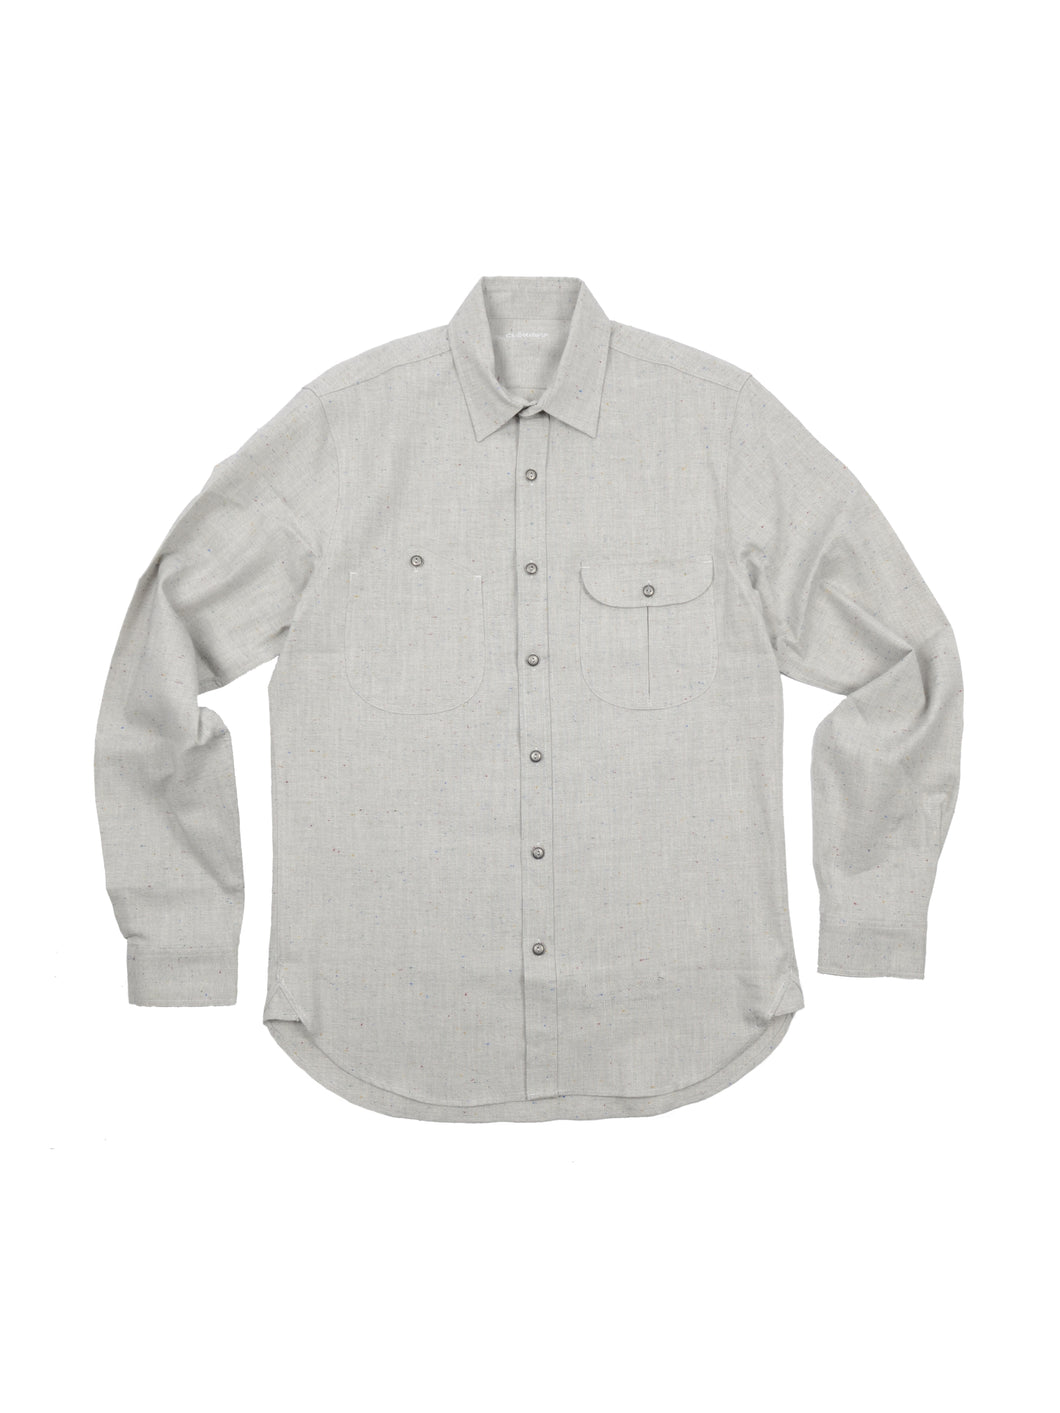 Jefe Multi-colored Nep Chambray shirt